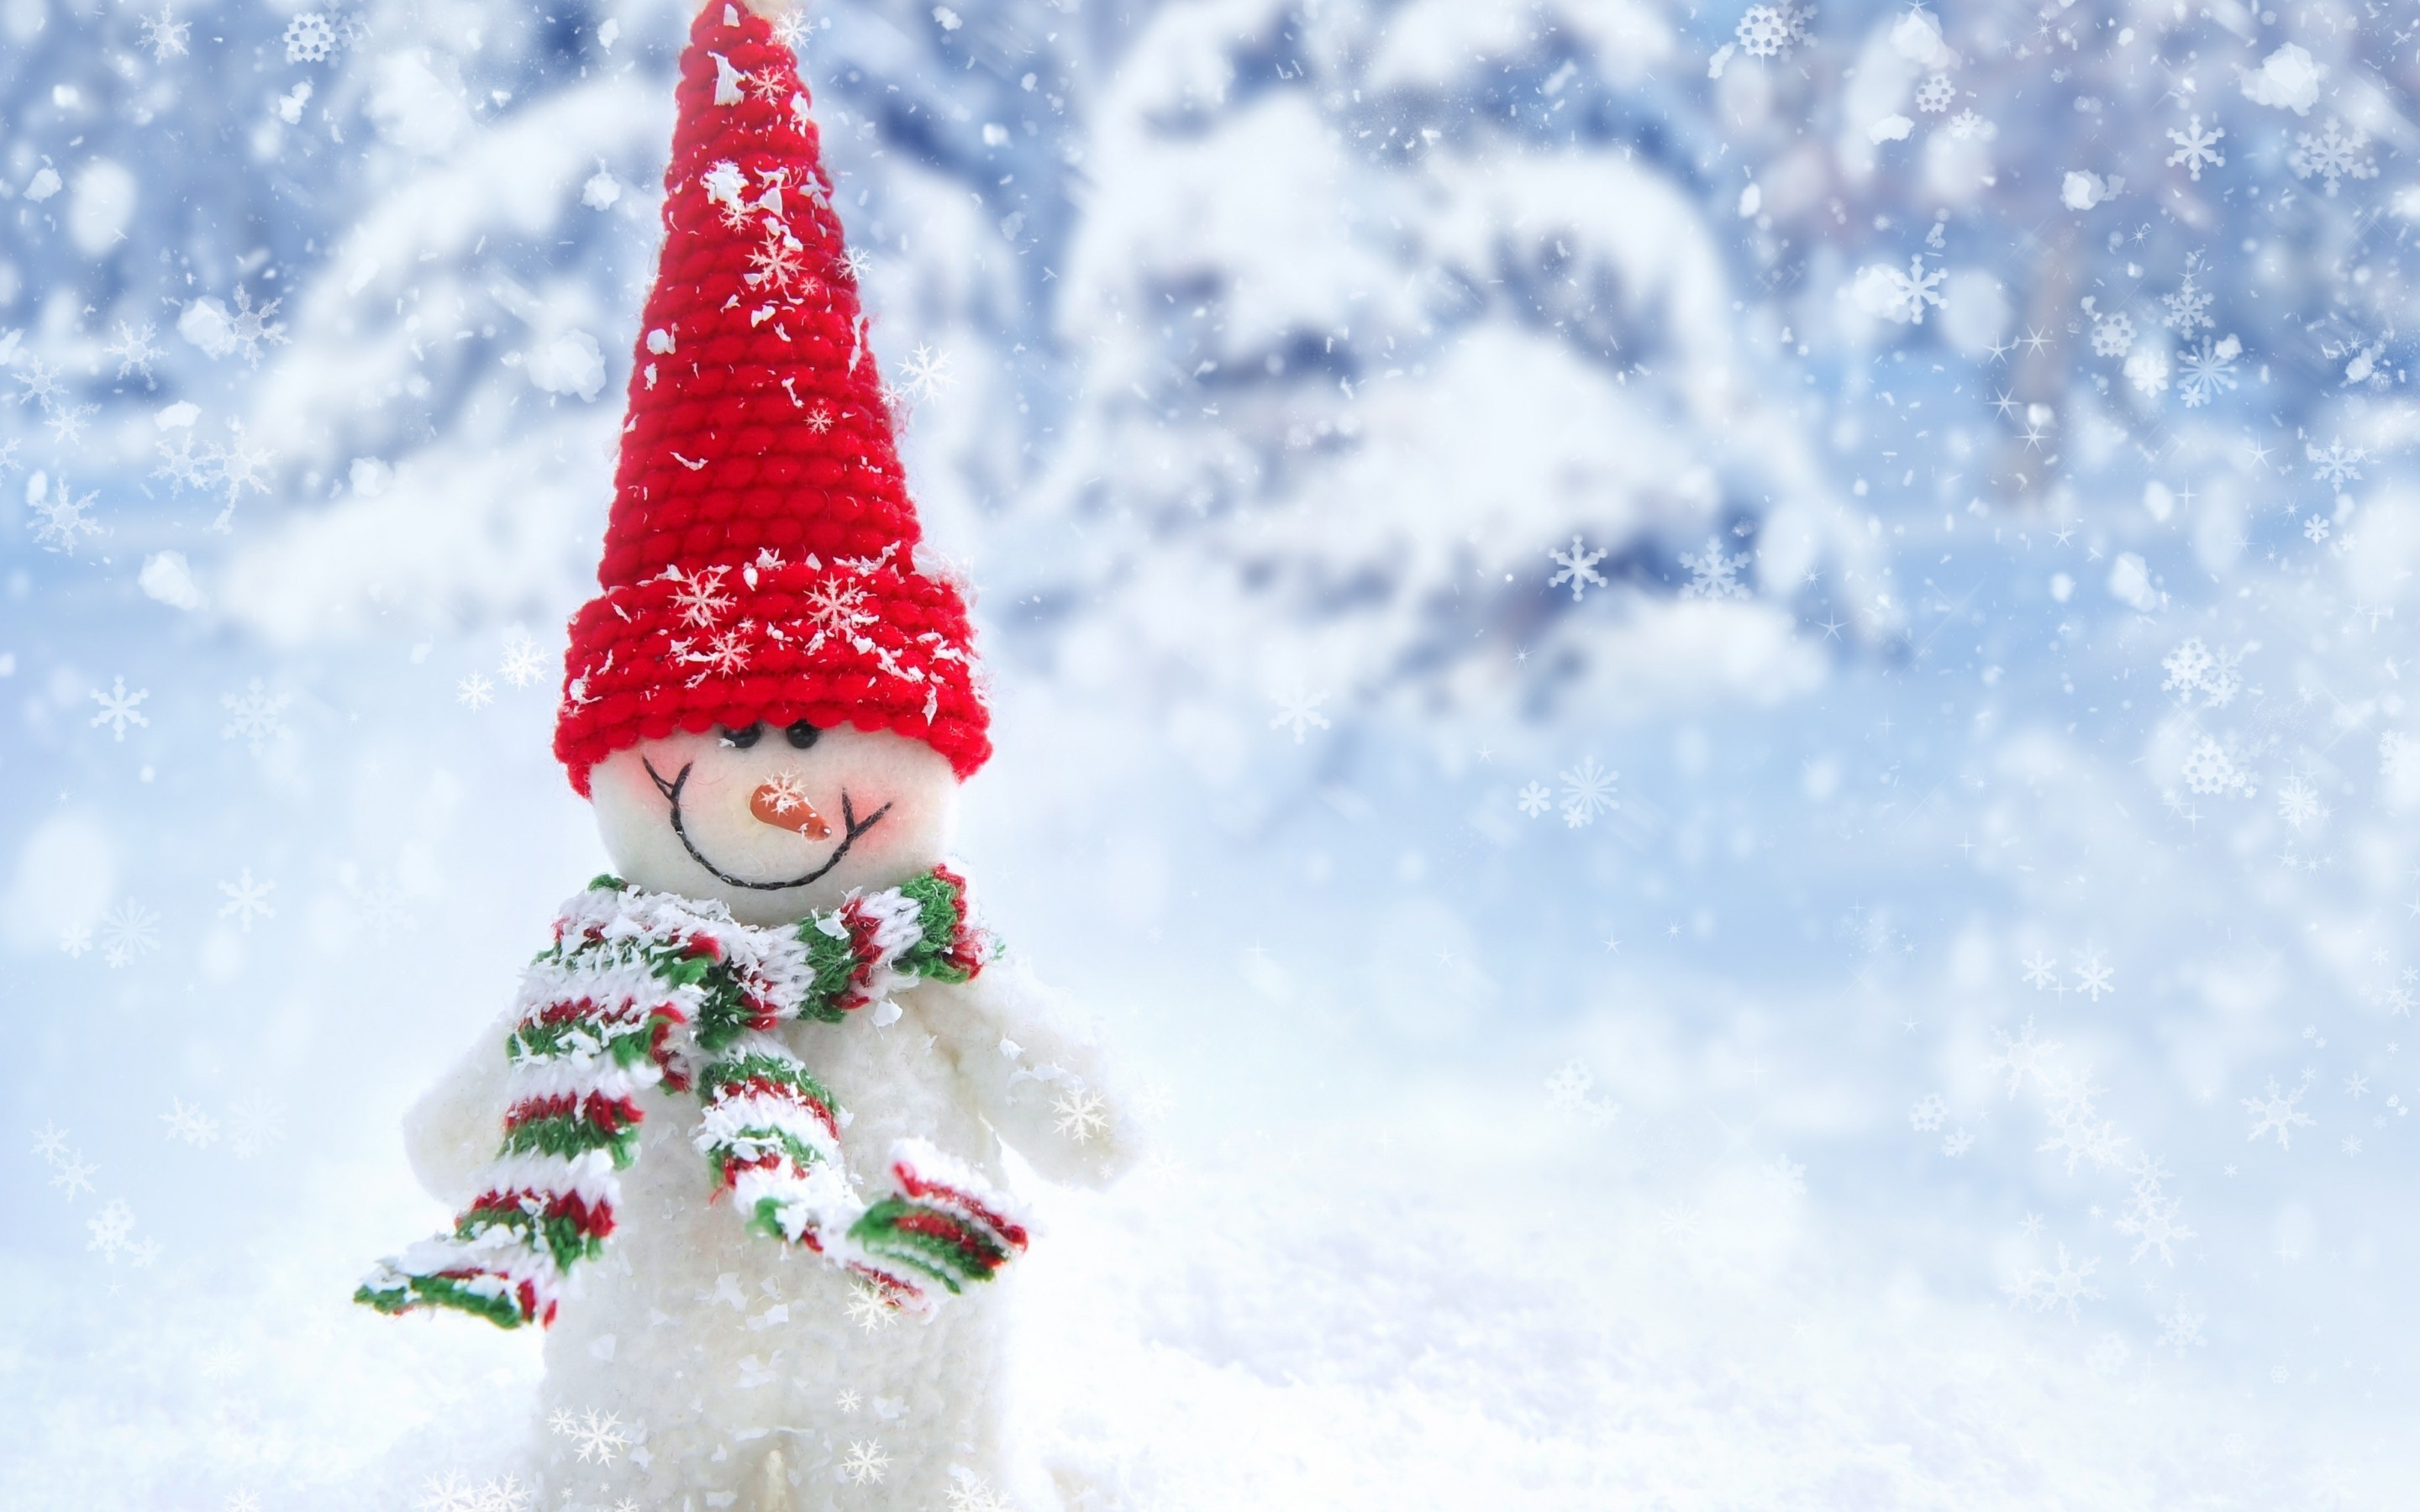 2880x1800 snow, winter, christmas, new year, snowman